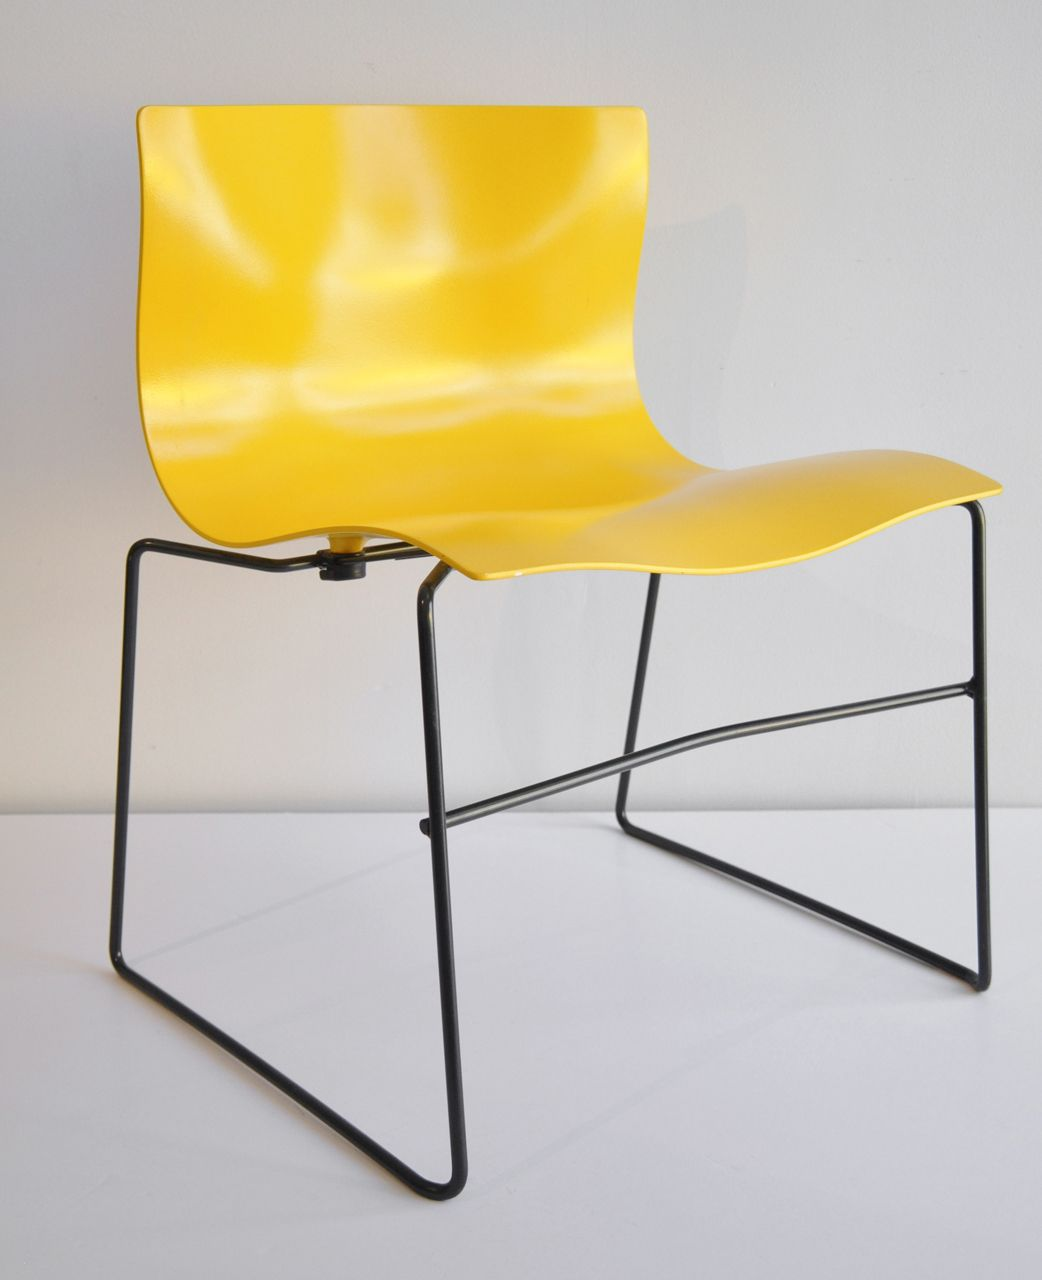 Knoll life chair geek - Pair Of Vintage Handkerchief Chairs By Vignelli For Knoll